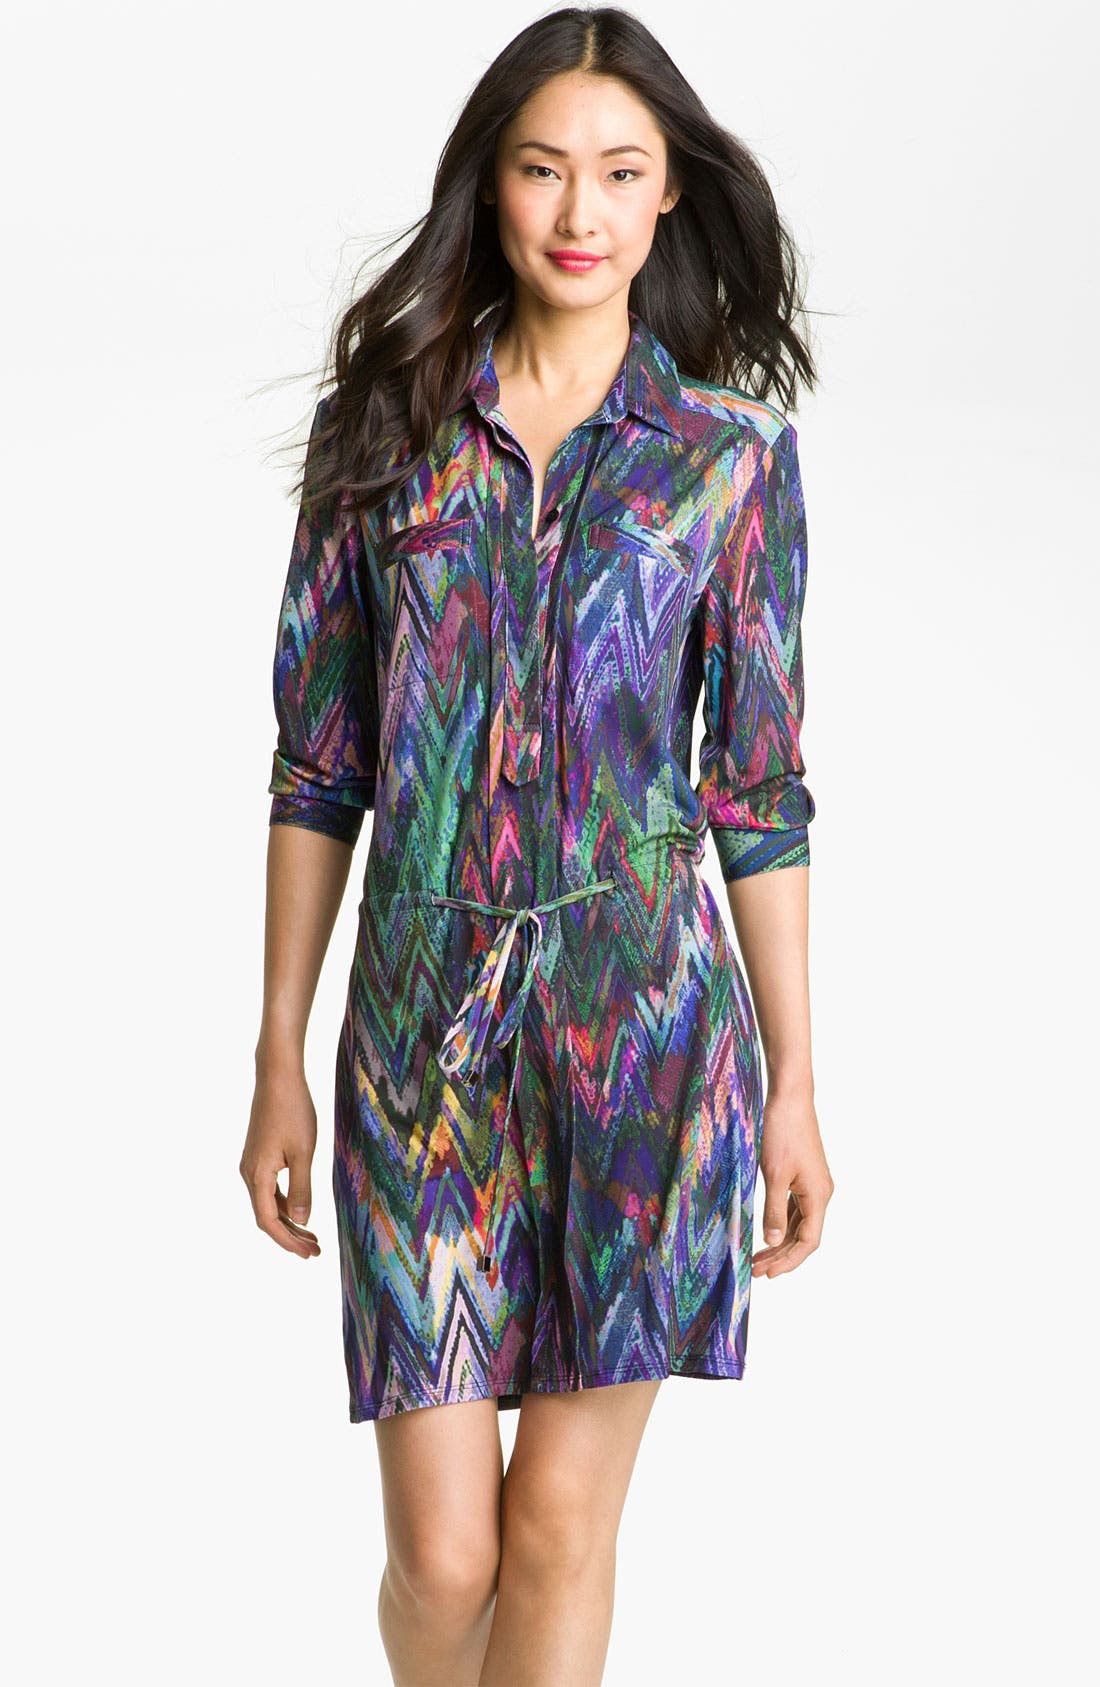 Alternate Image 1 Selected - Suzi Chin for Maggy Boutique Print Jersey Shirtdress (Petite)